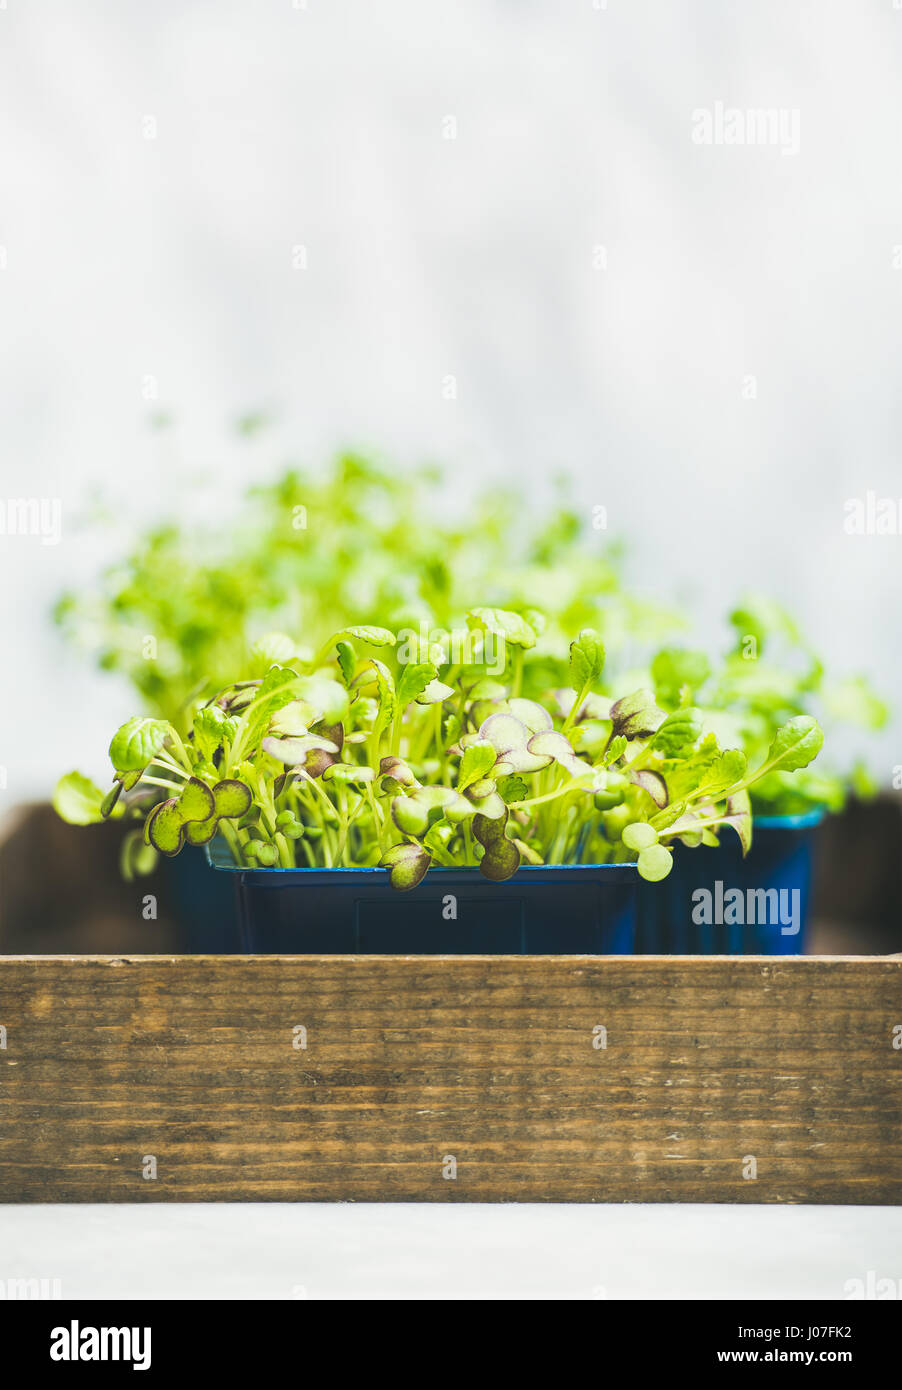 Fresh spring green live radish kress sprouts on wooden box - Stock Image